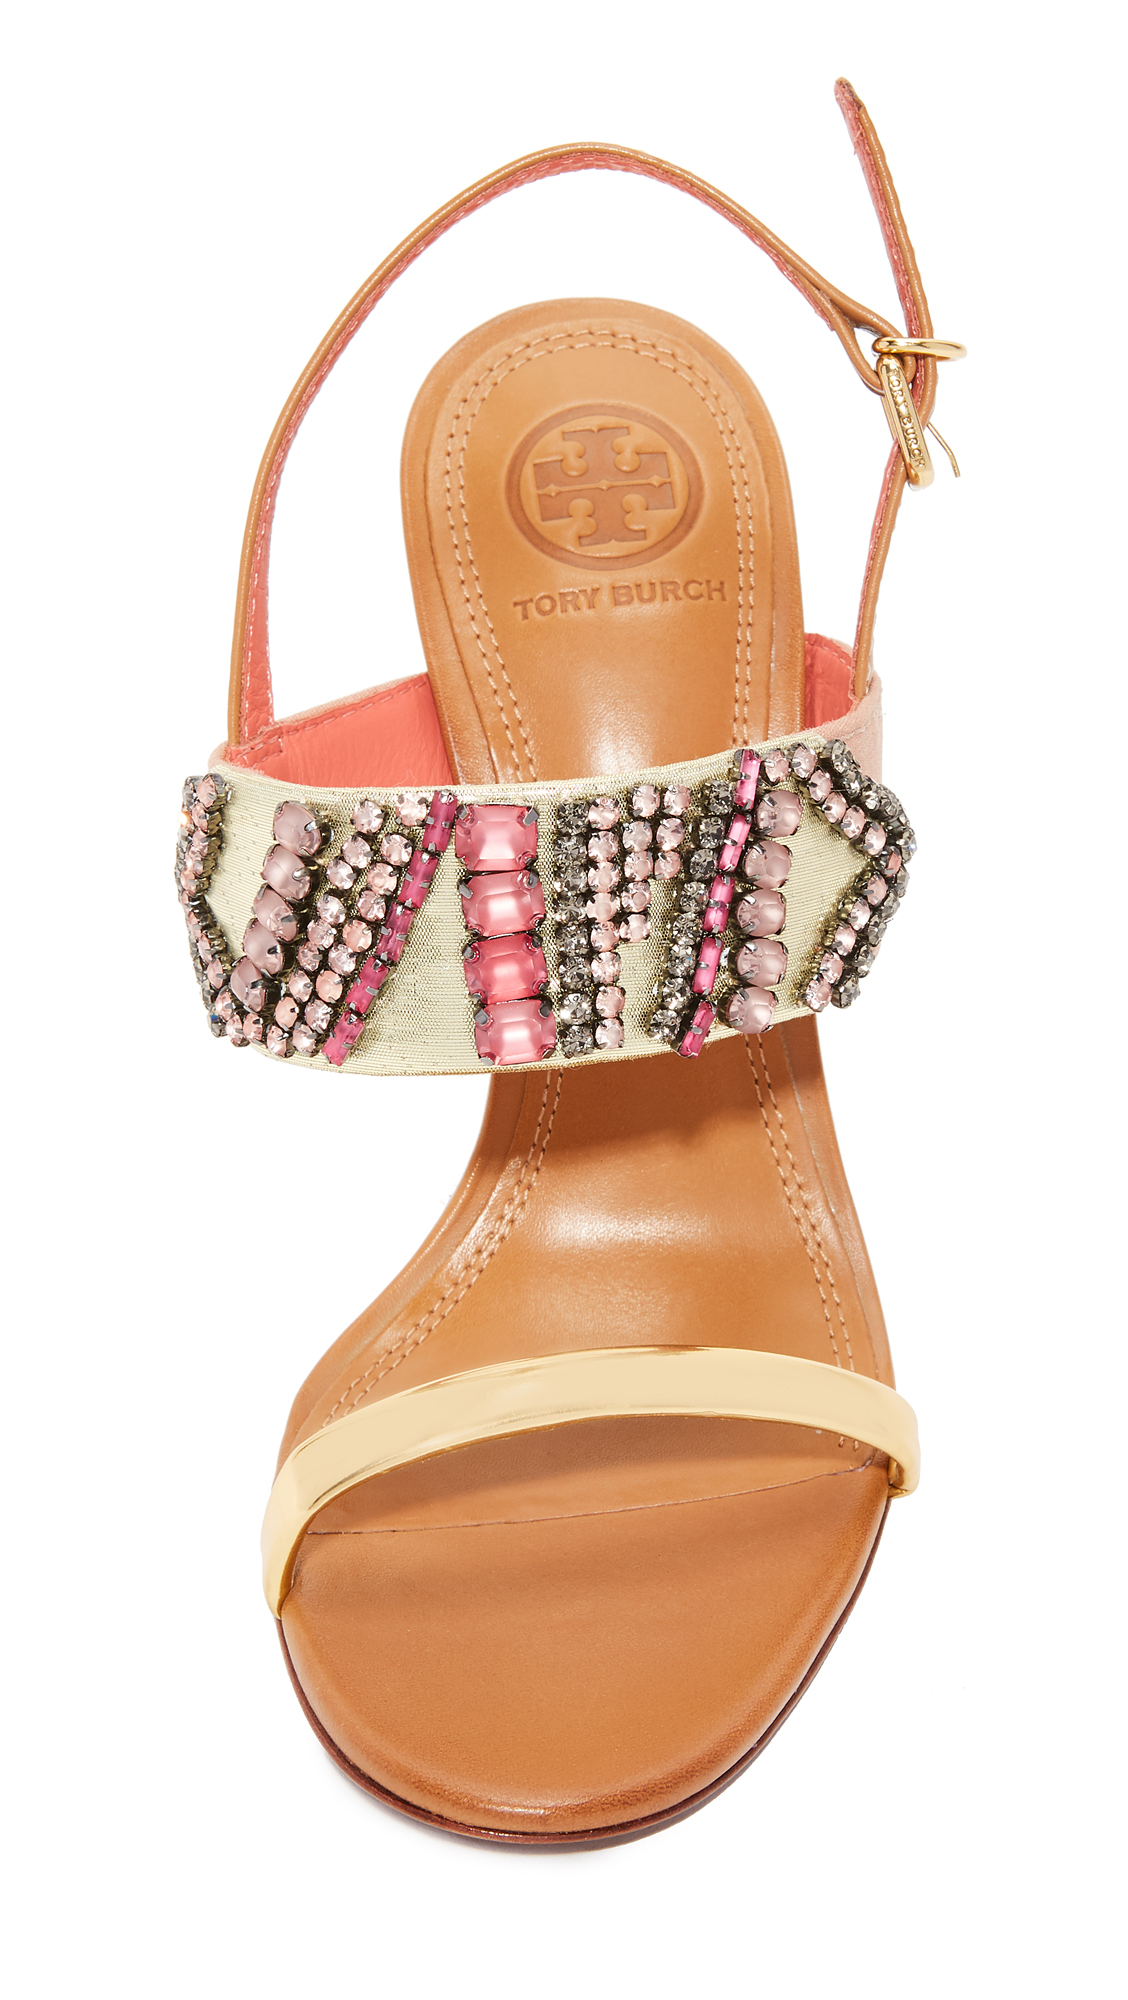 f55e2afe6 Tory Burch Tanner 100mm Sandals